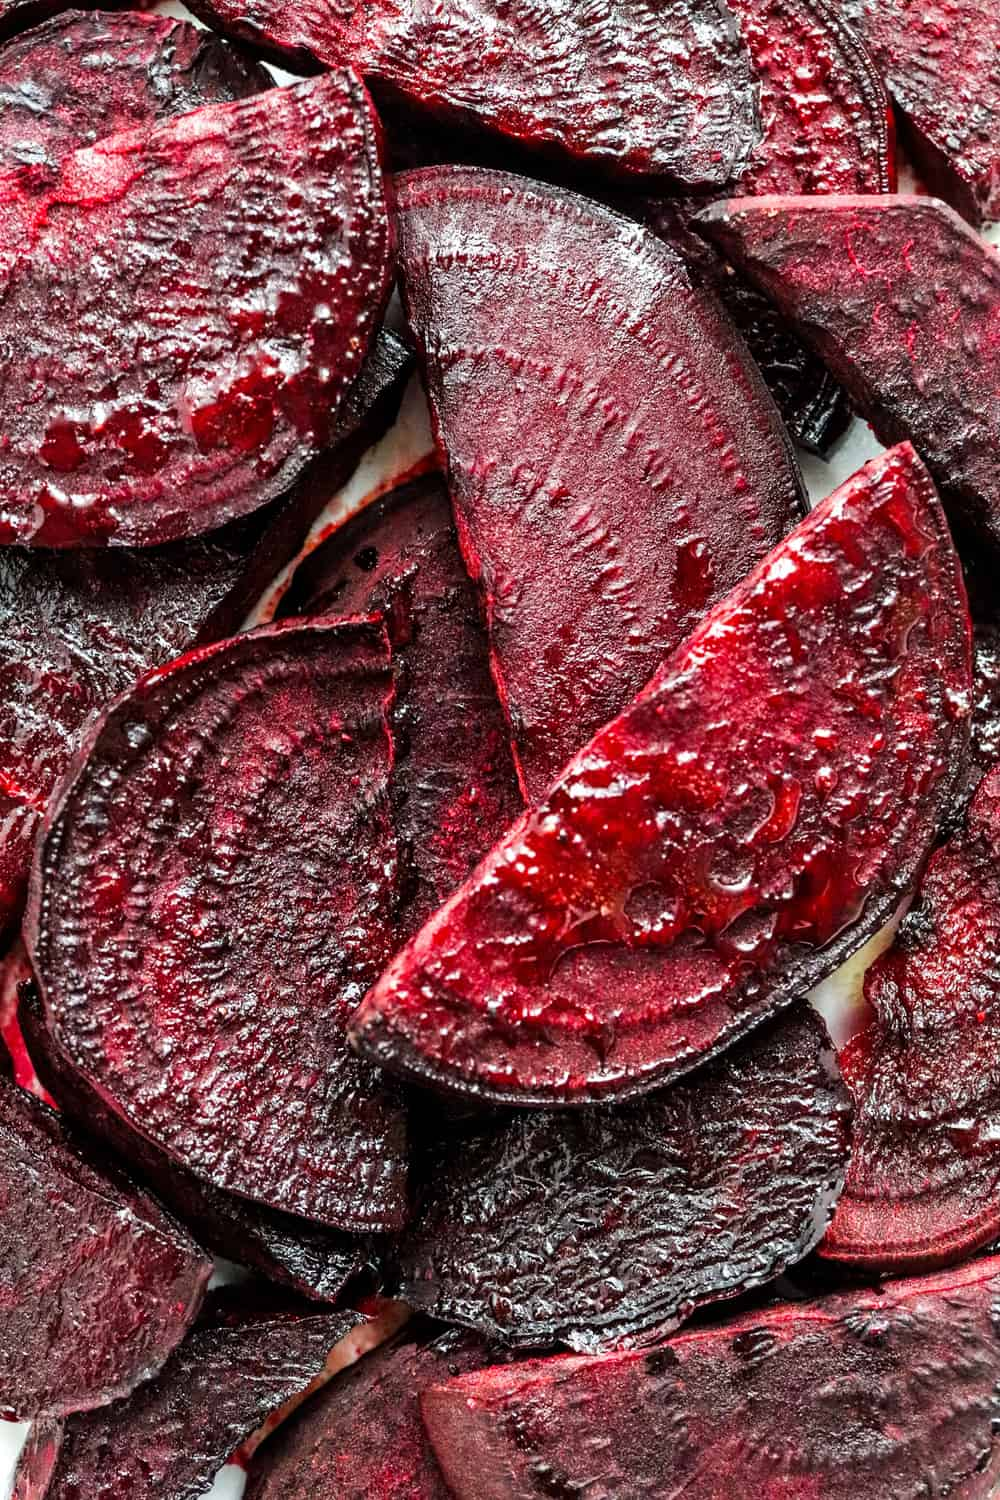 Sliced, rosted red beets